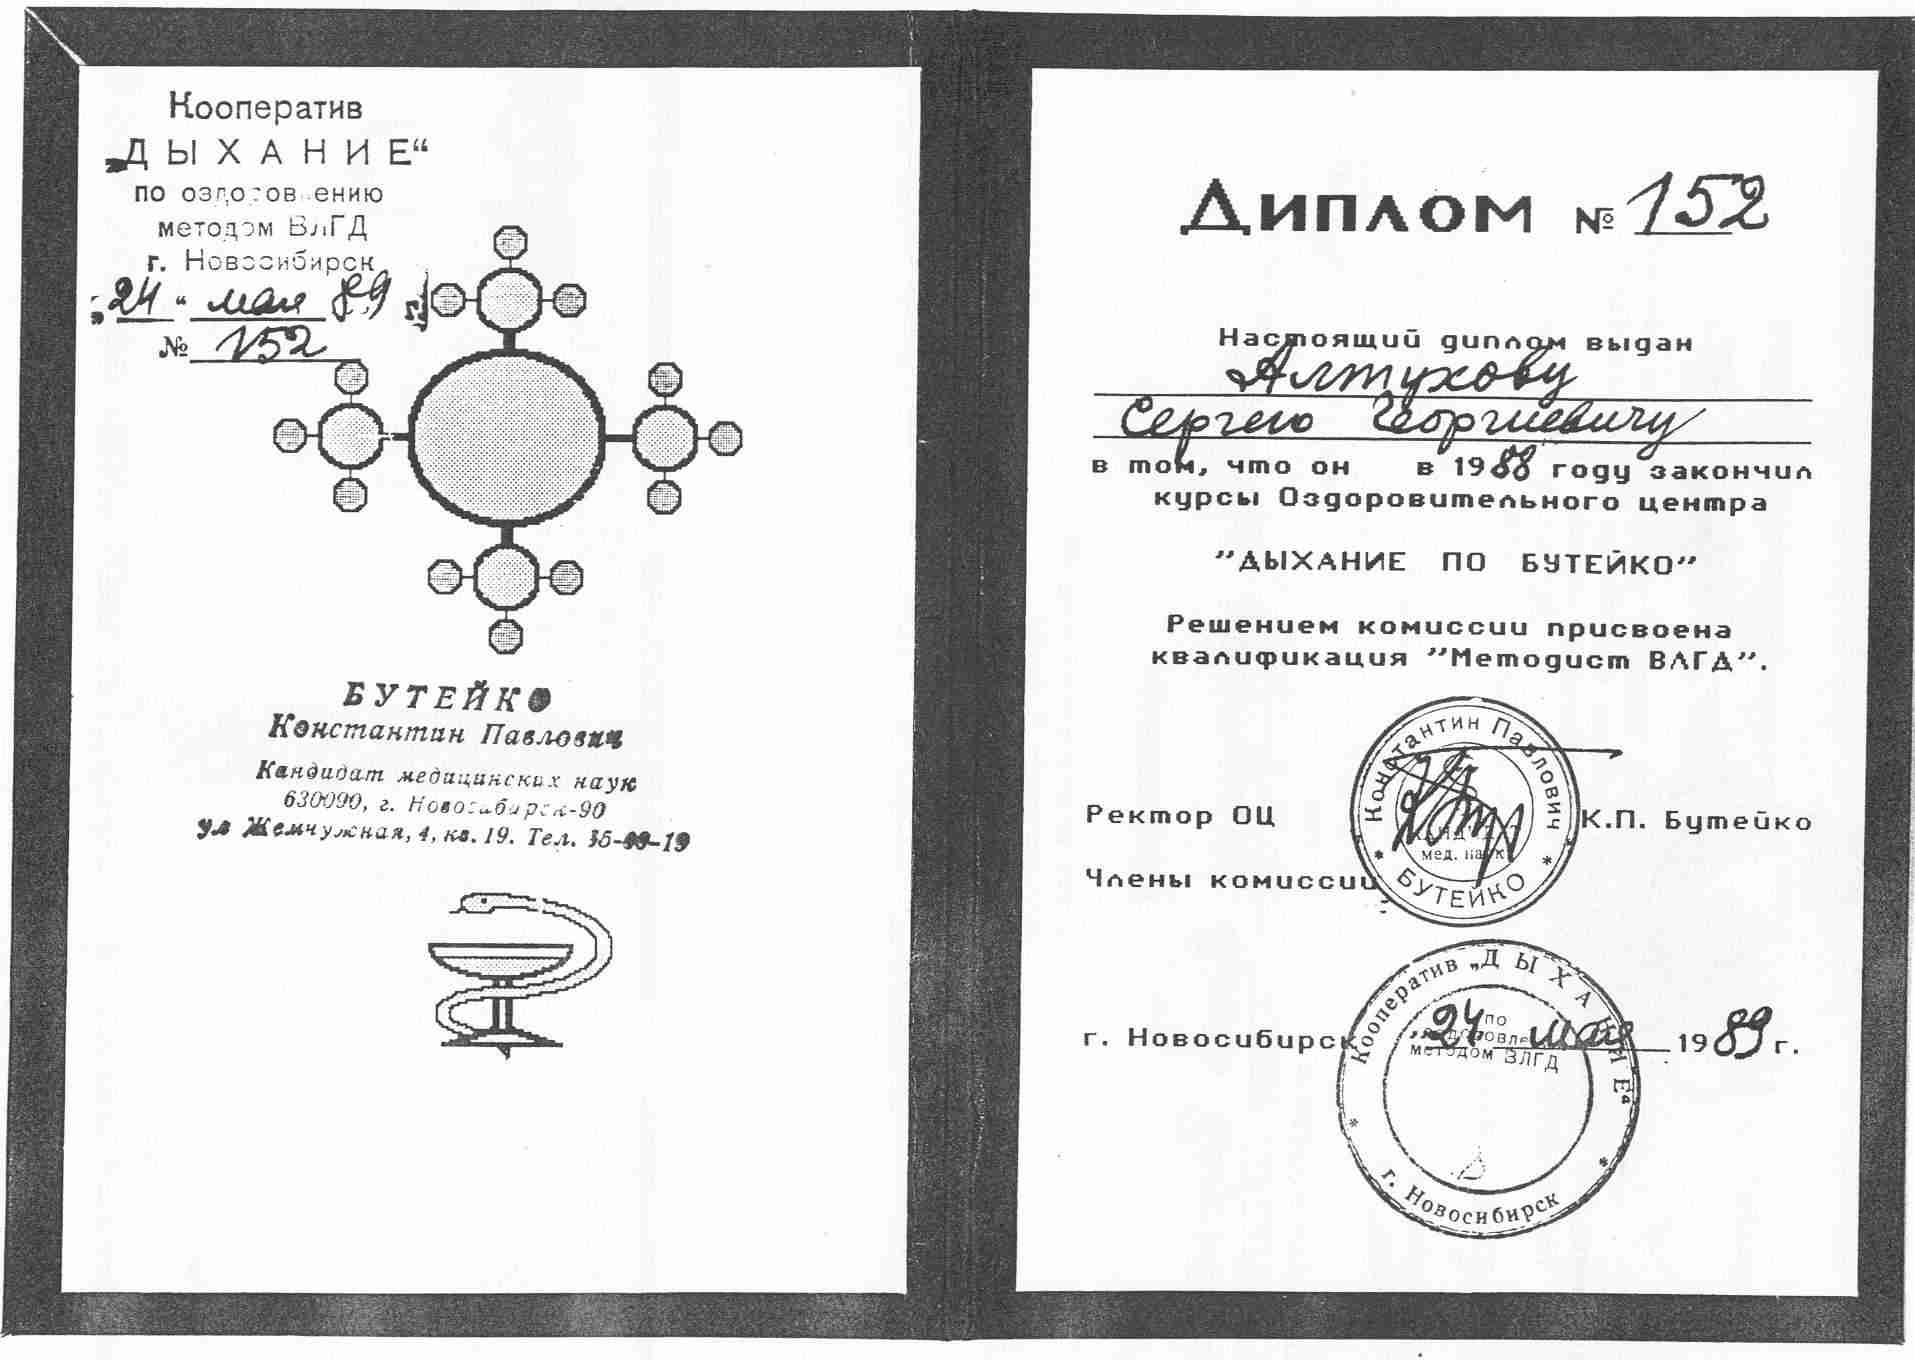 The diploma of  Altoukhov S.G.